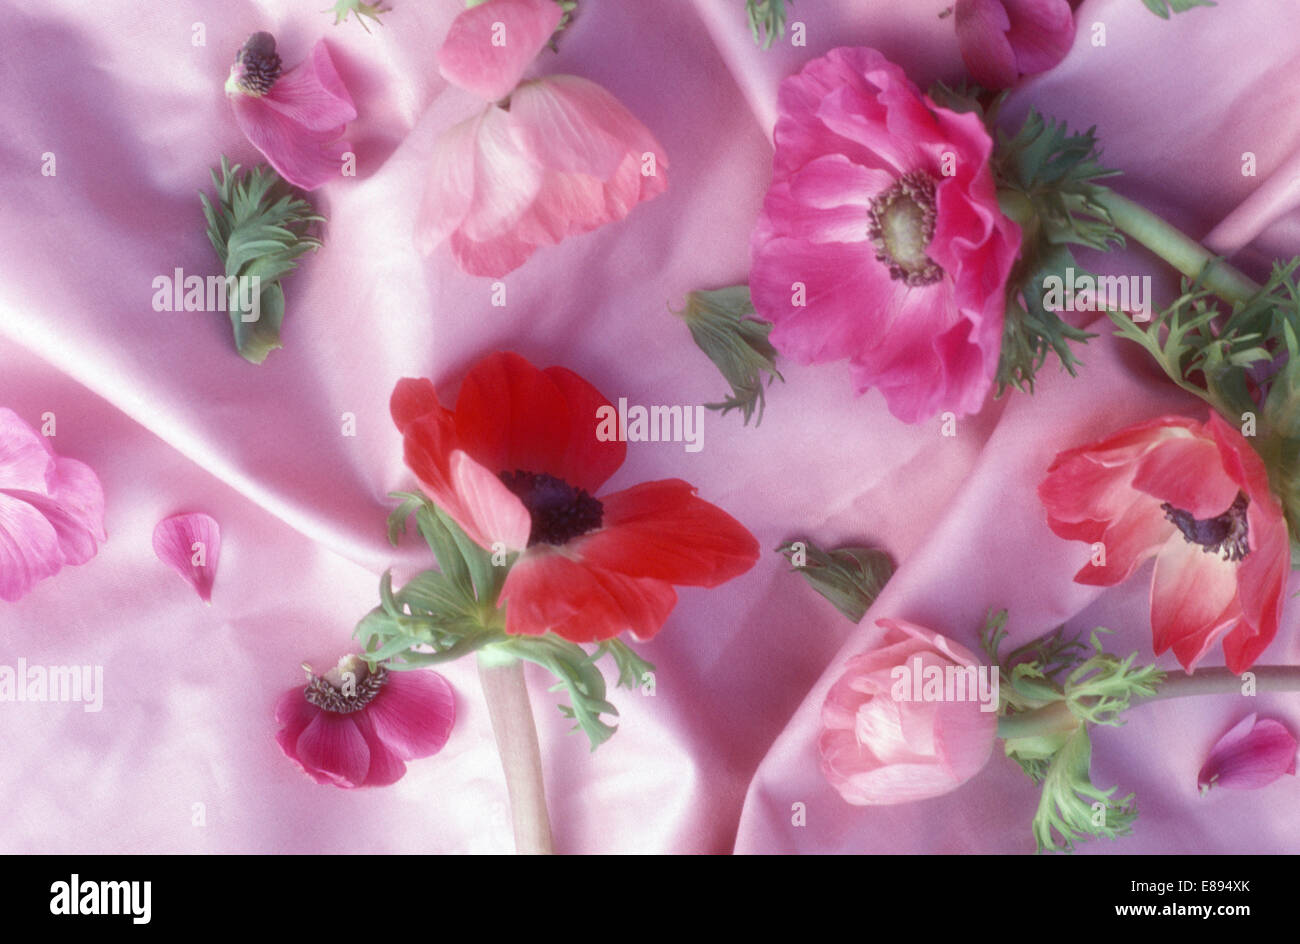 Red Anemone Flowers Stock Photos Red Anemone Flowers Stock Images